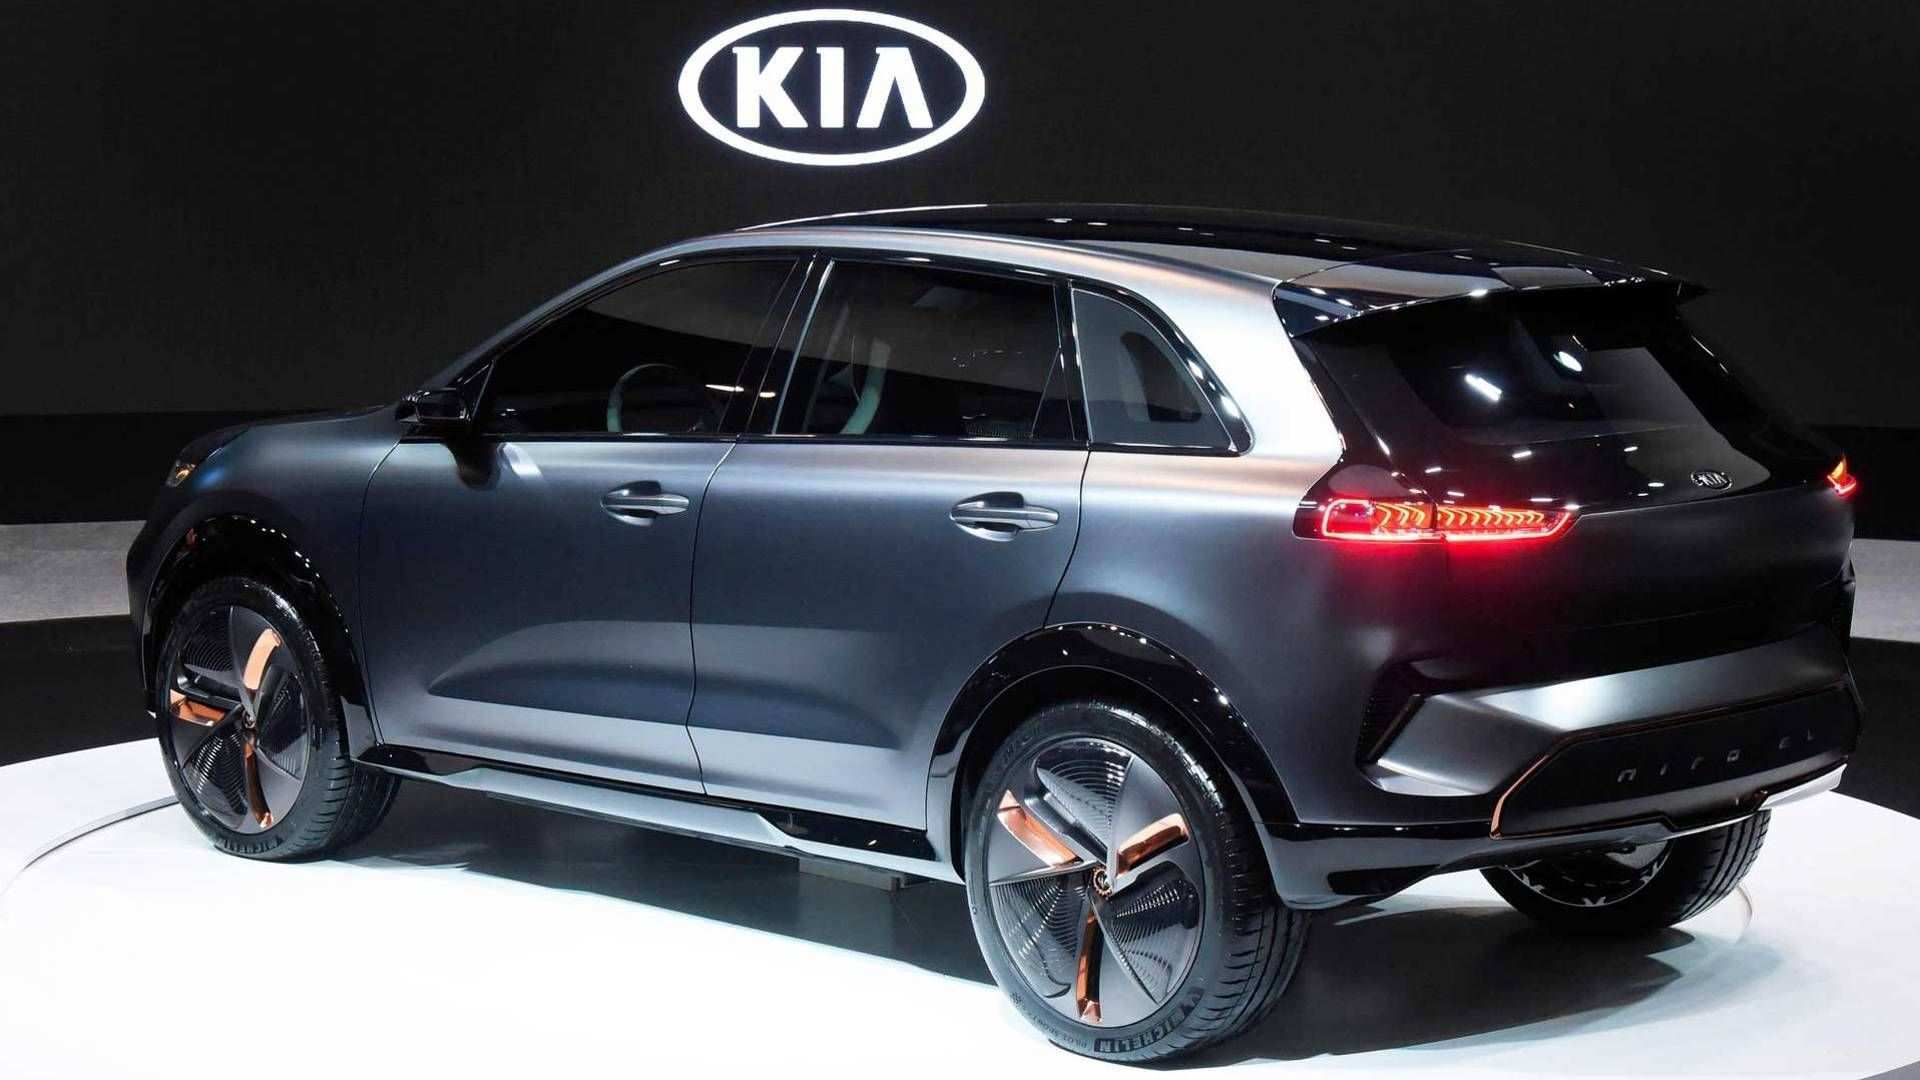 43 All New Kia Lineup 2019 Prices